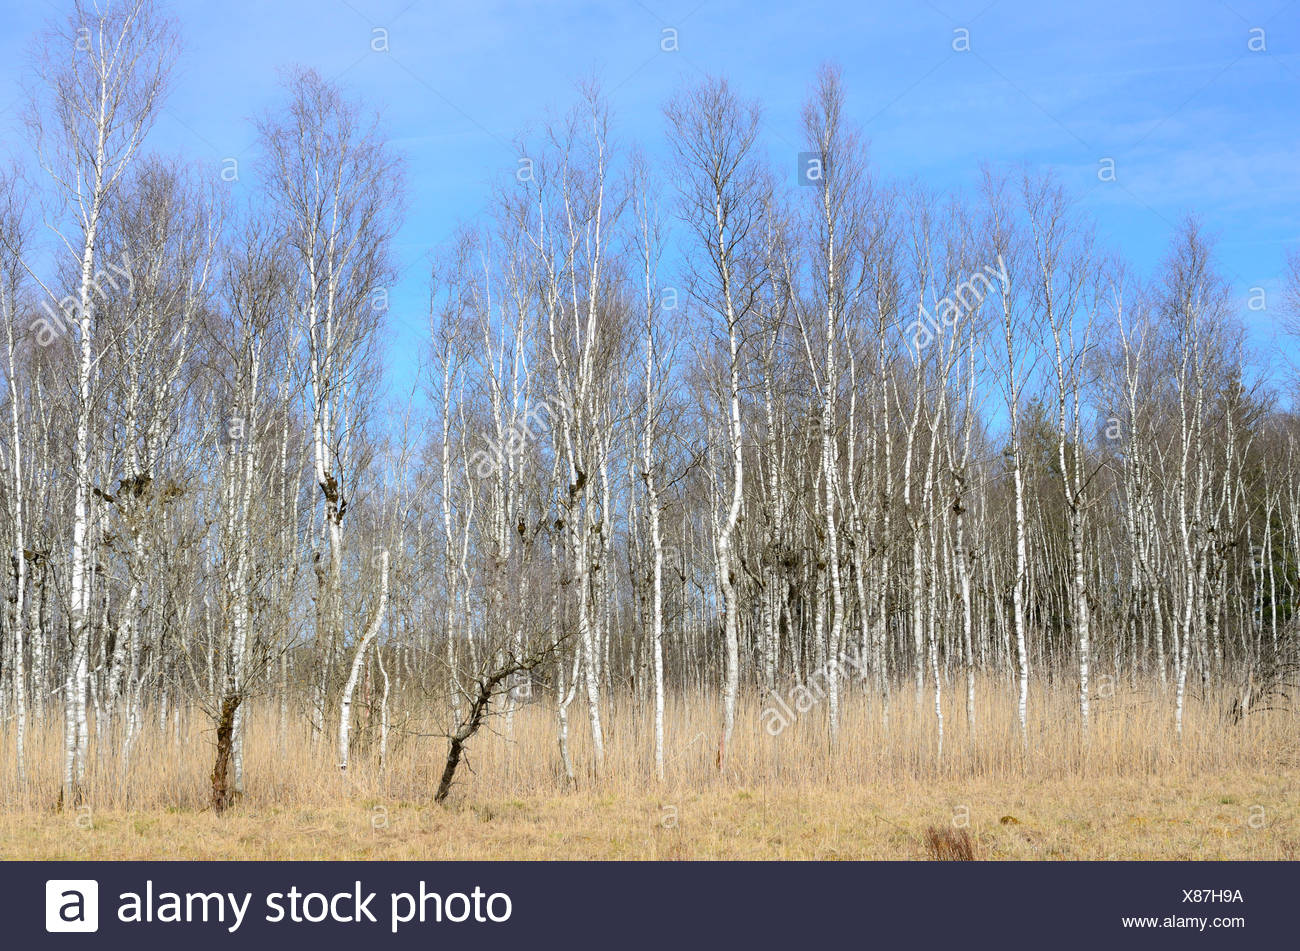 Birch-tree, forest, Betulaceae, forest preserve, moorland, nature, reserve, Federsee, Baden-Württemberg, Germany Stock Photo